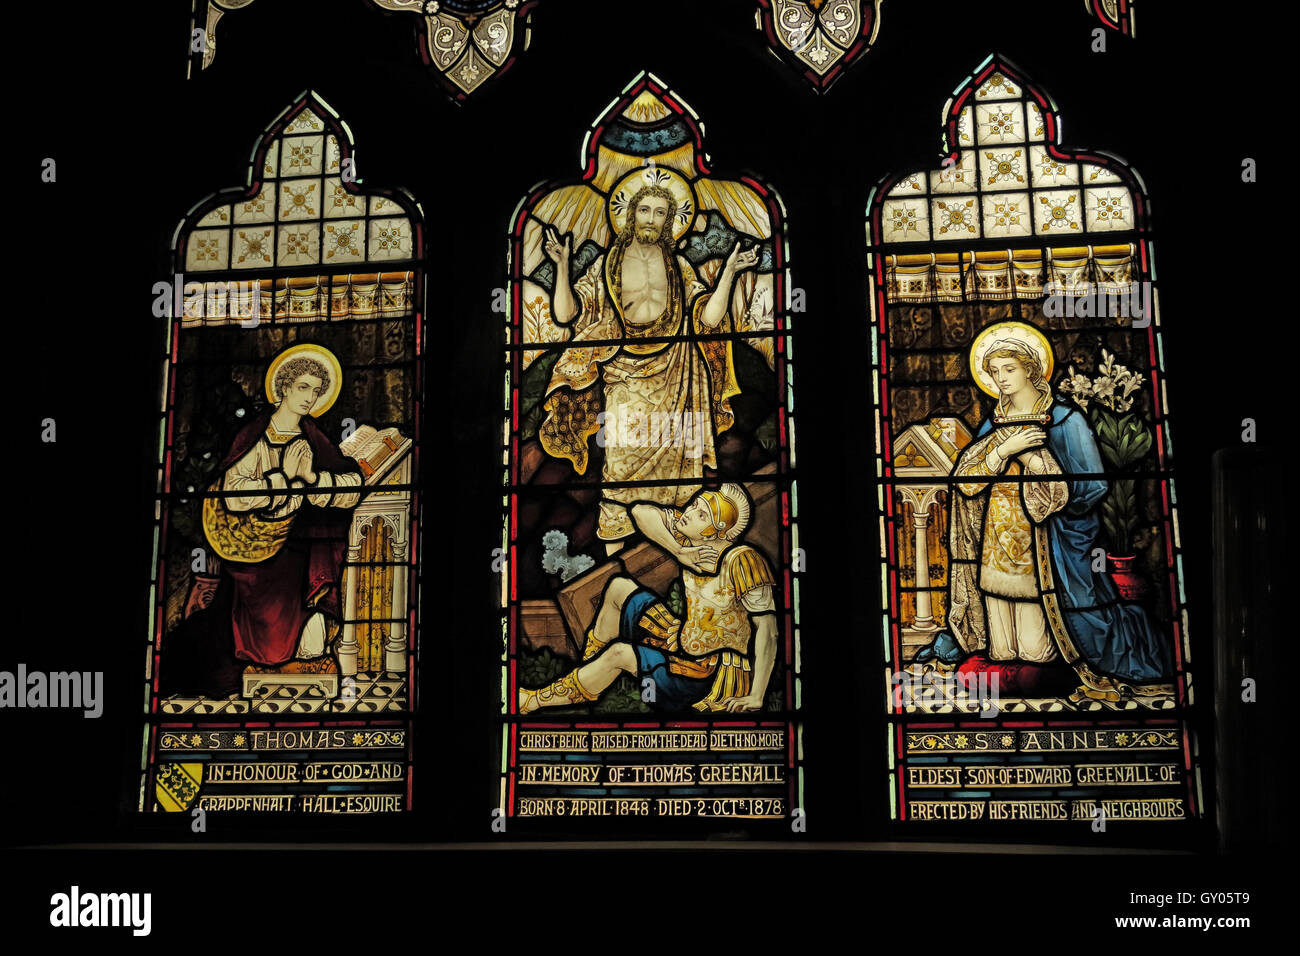 St Wilfrids Church Grappenhall- Thomas Anne Greenall stained glass Window Warrington - Stock Image